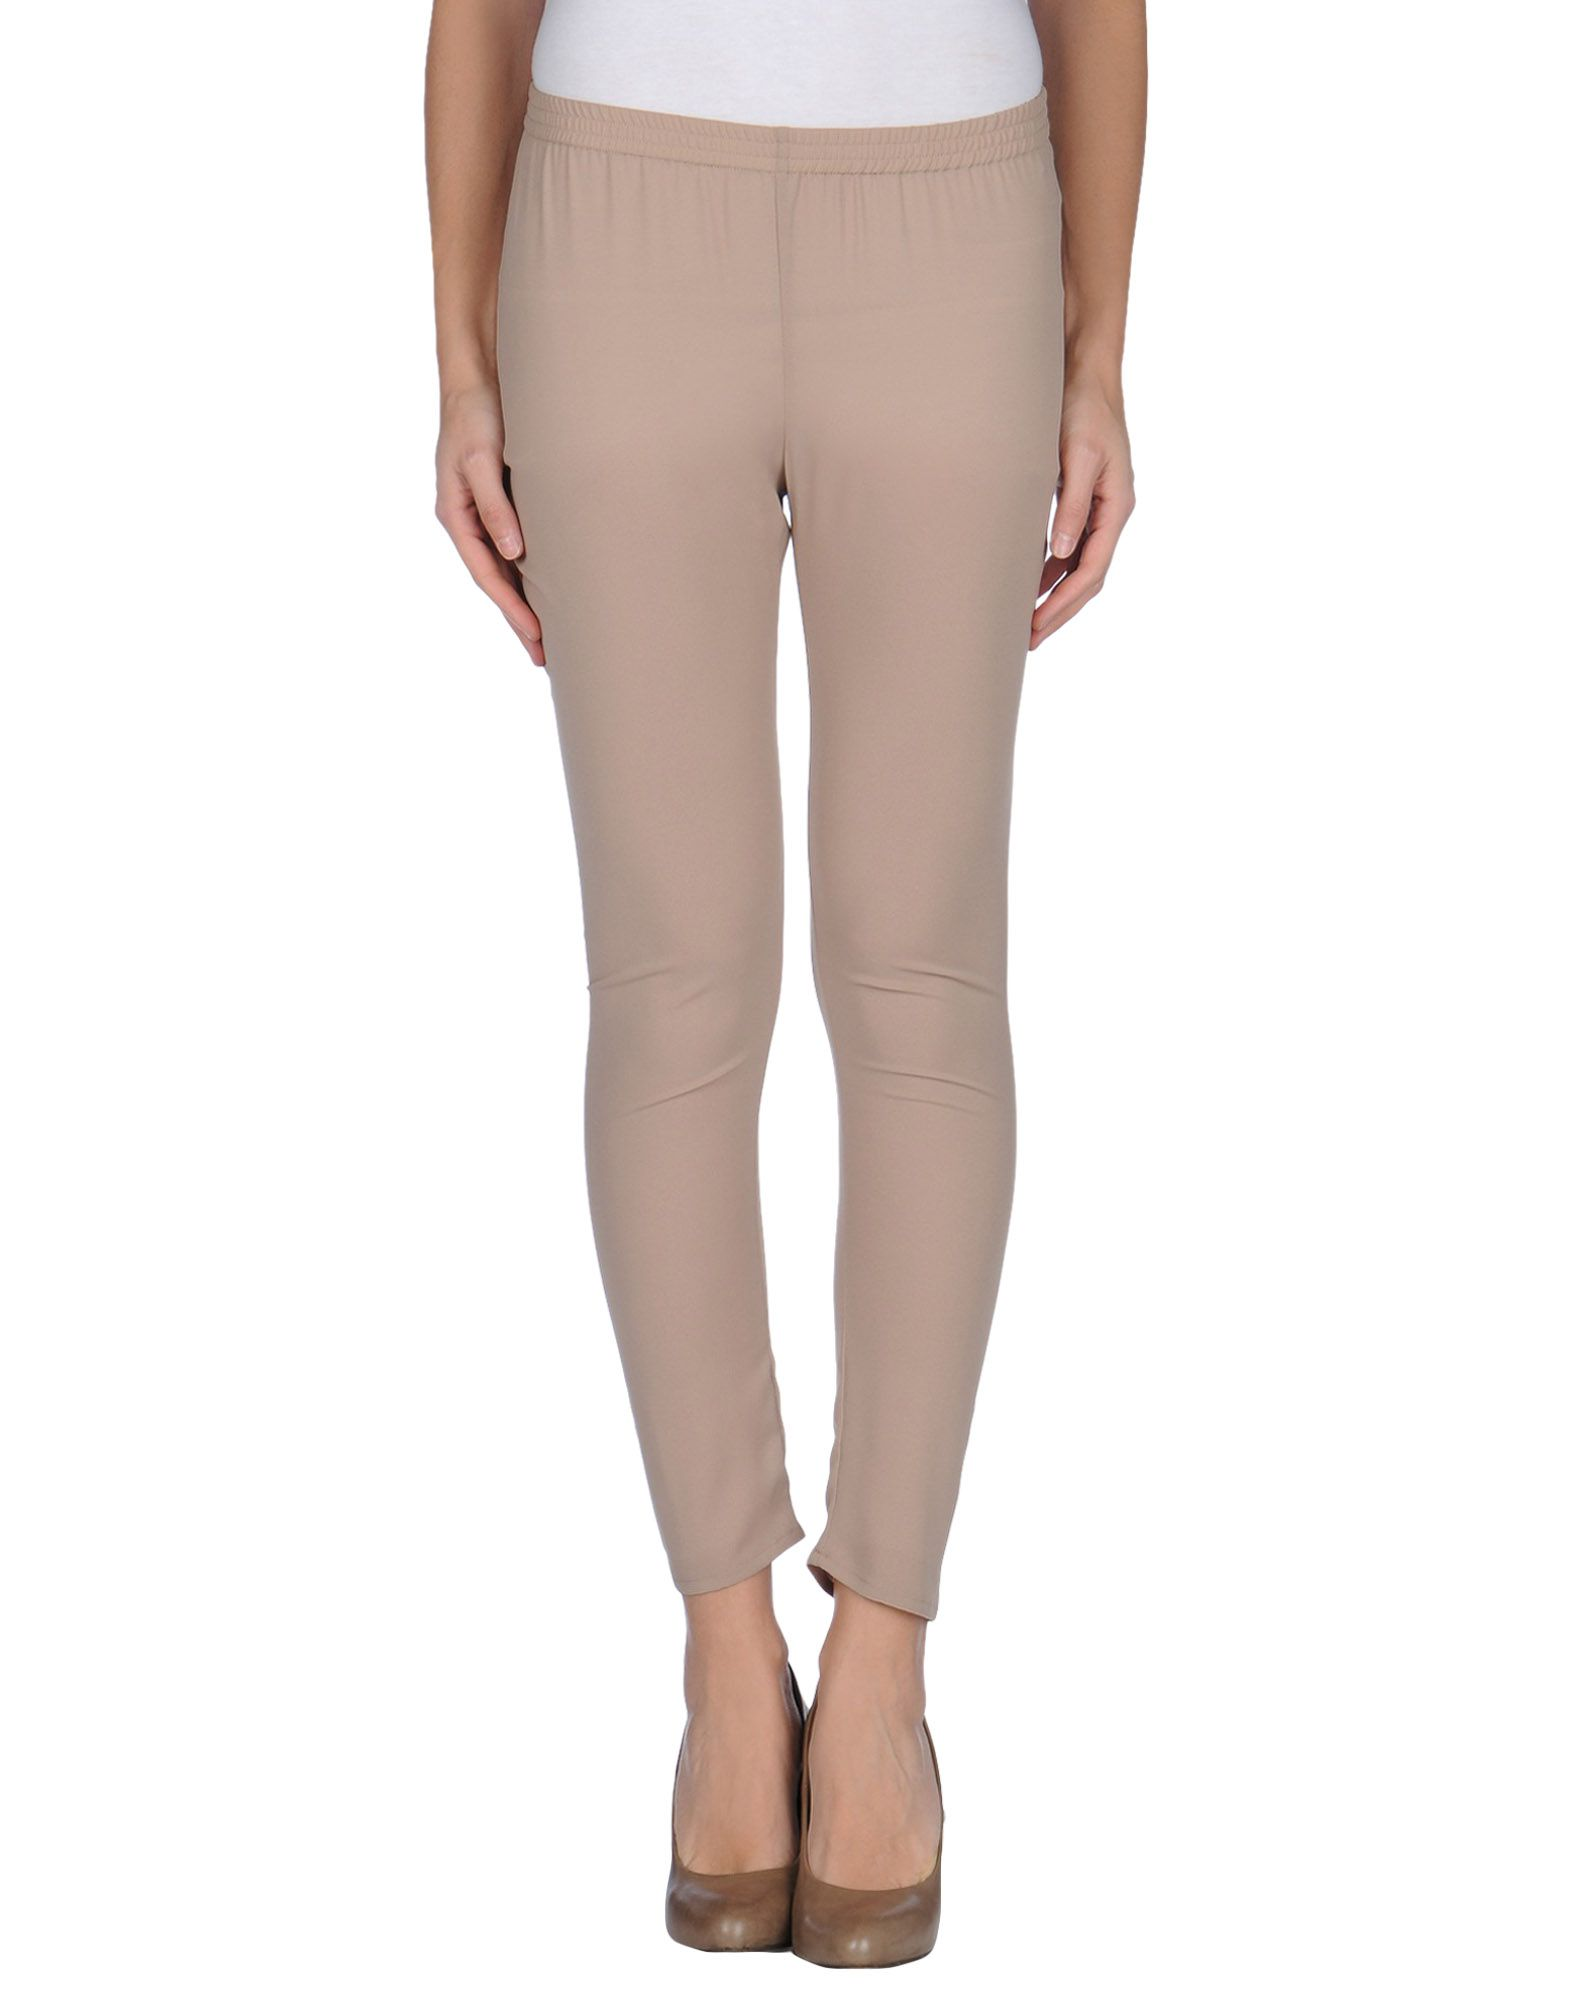 Pantalone Dritto Twinset donna donna donna - 36661443DW 4df